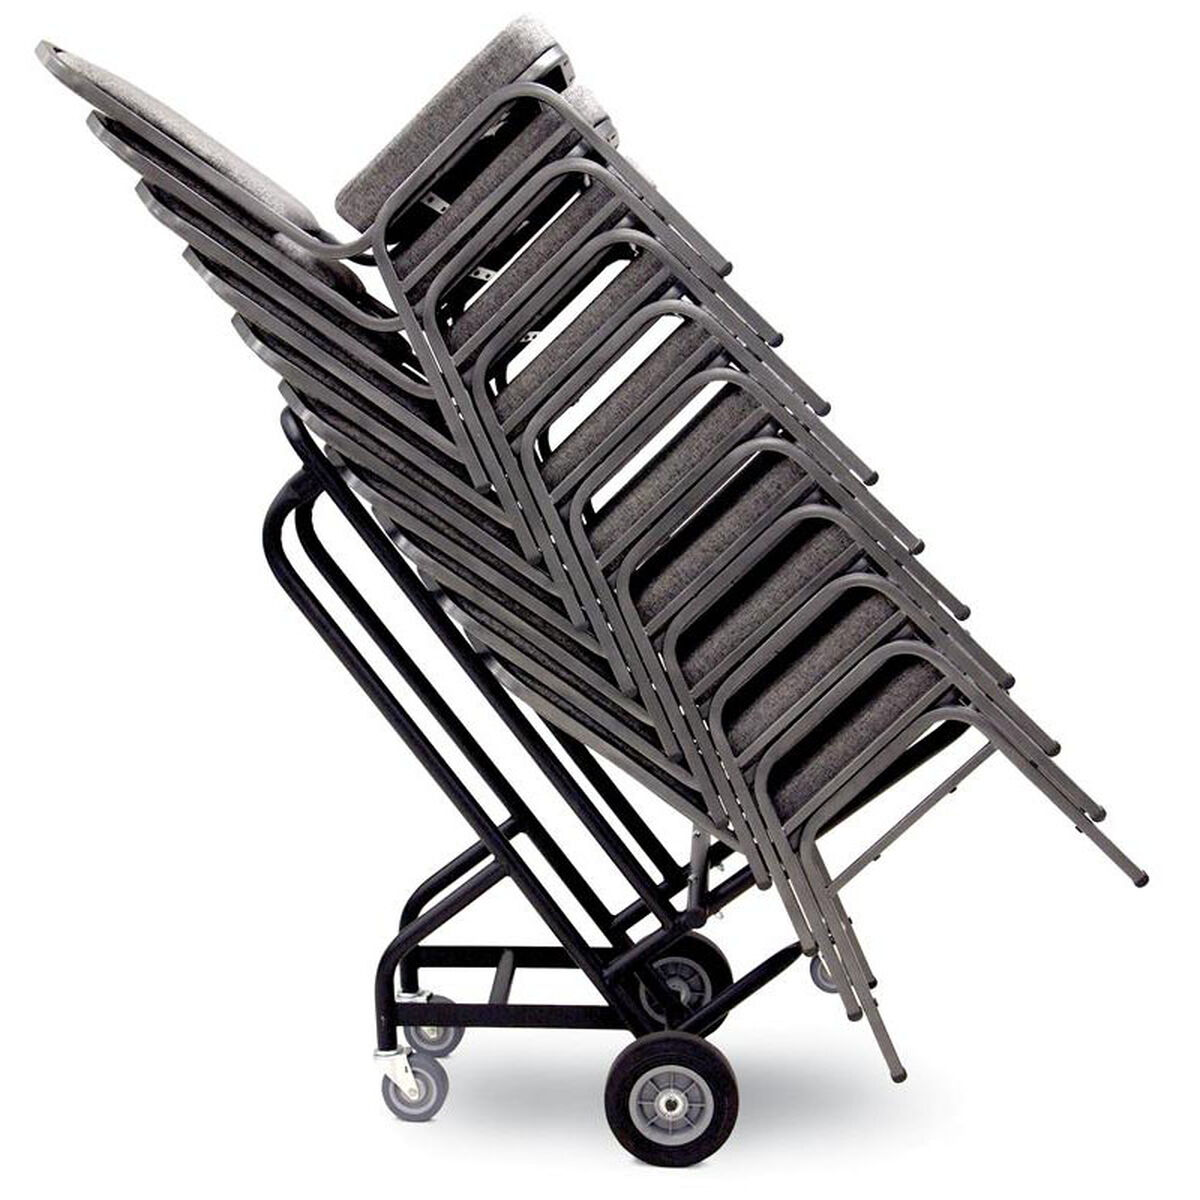 steel frame stack chair truck 01808 stackchairs4less com